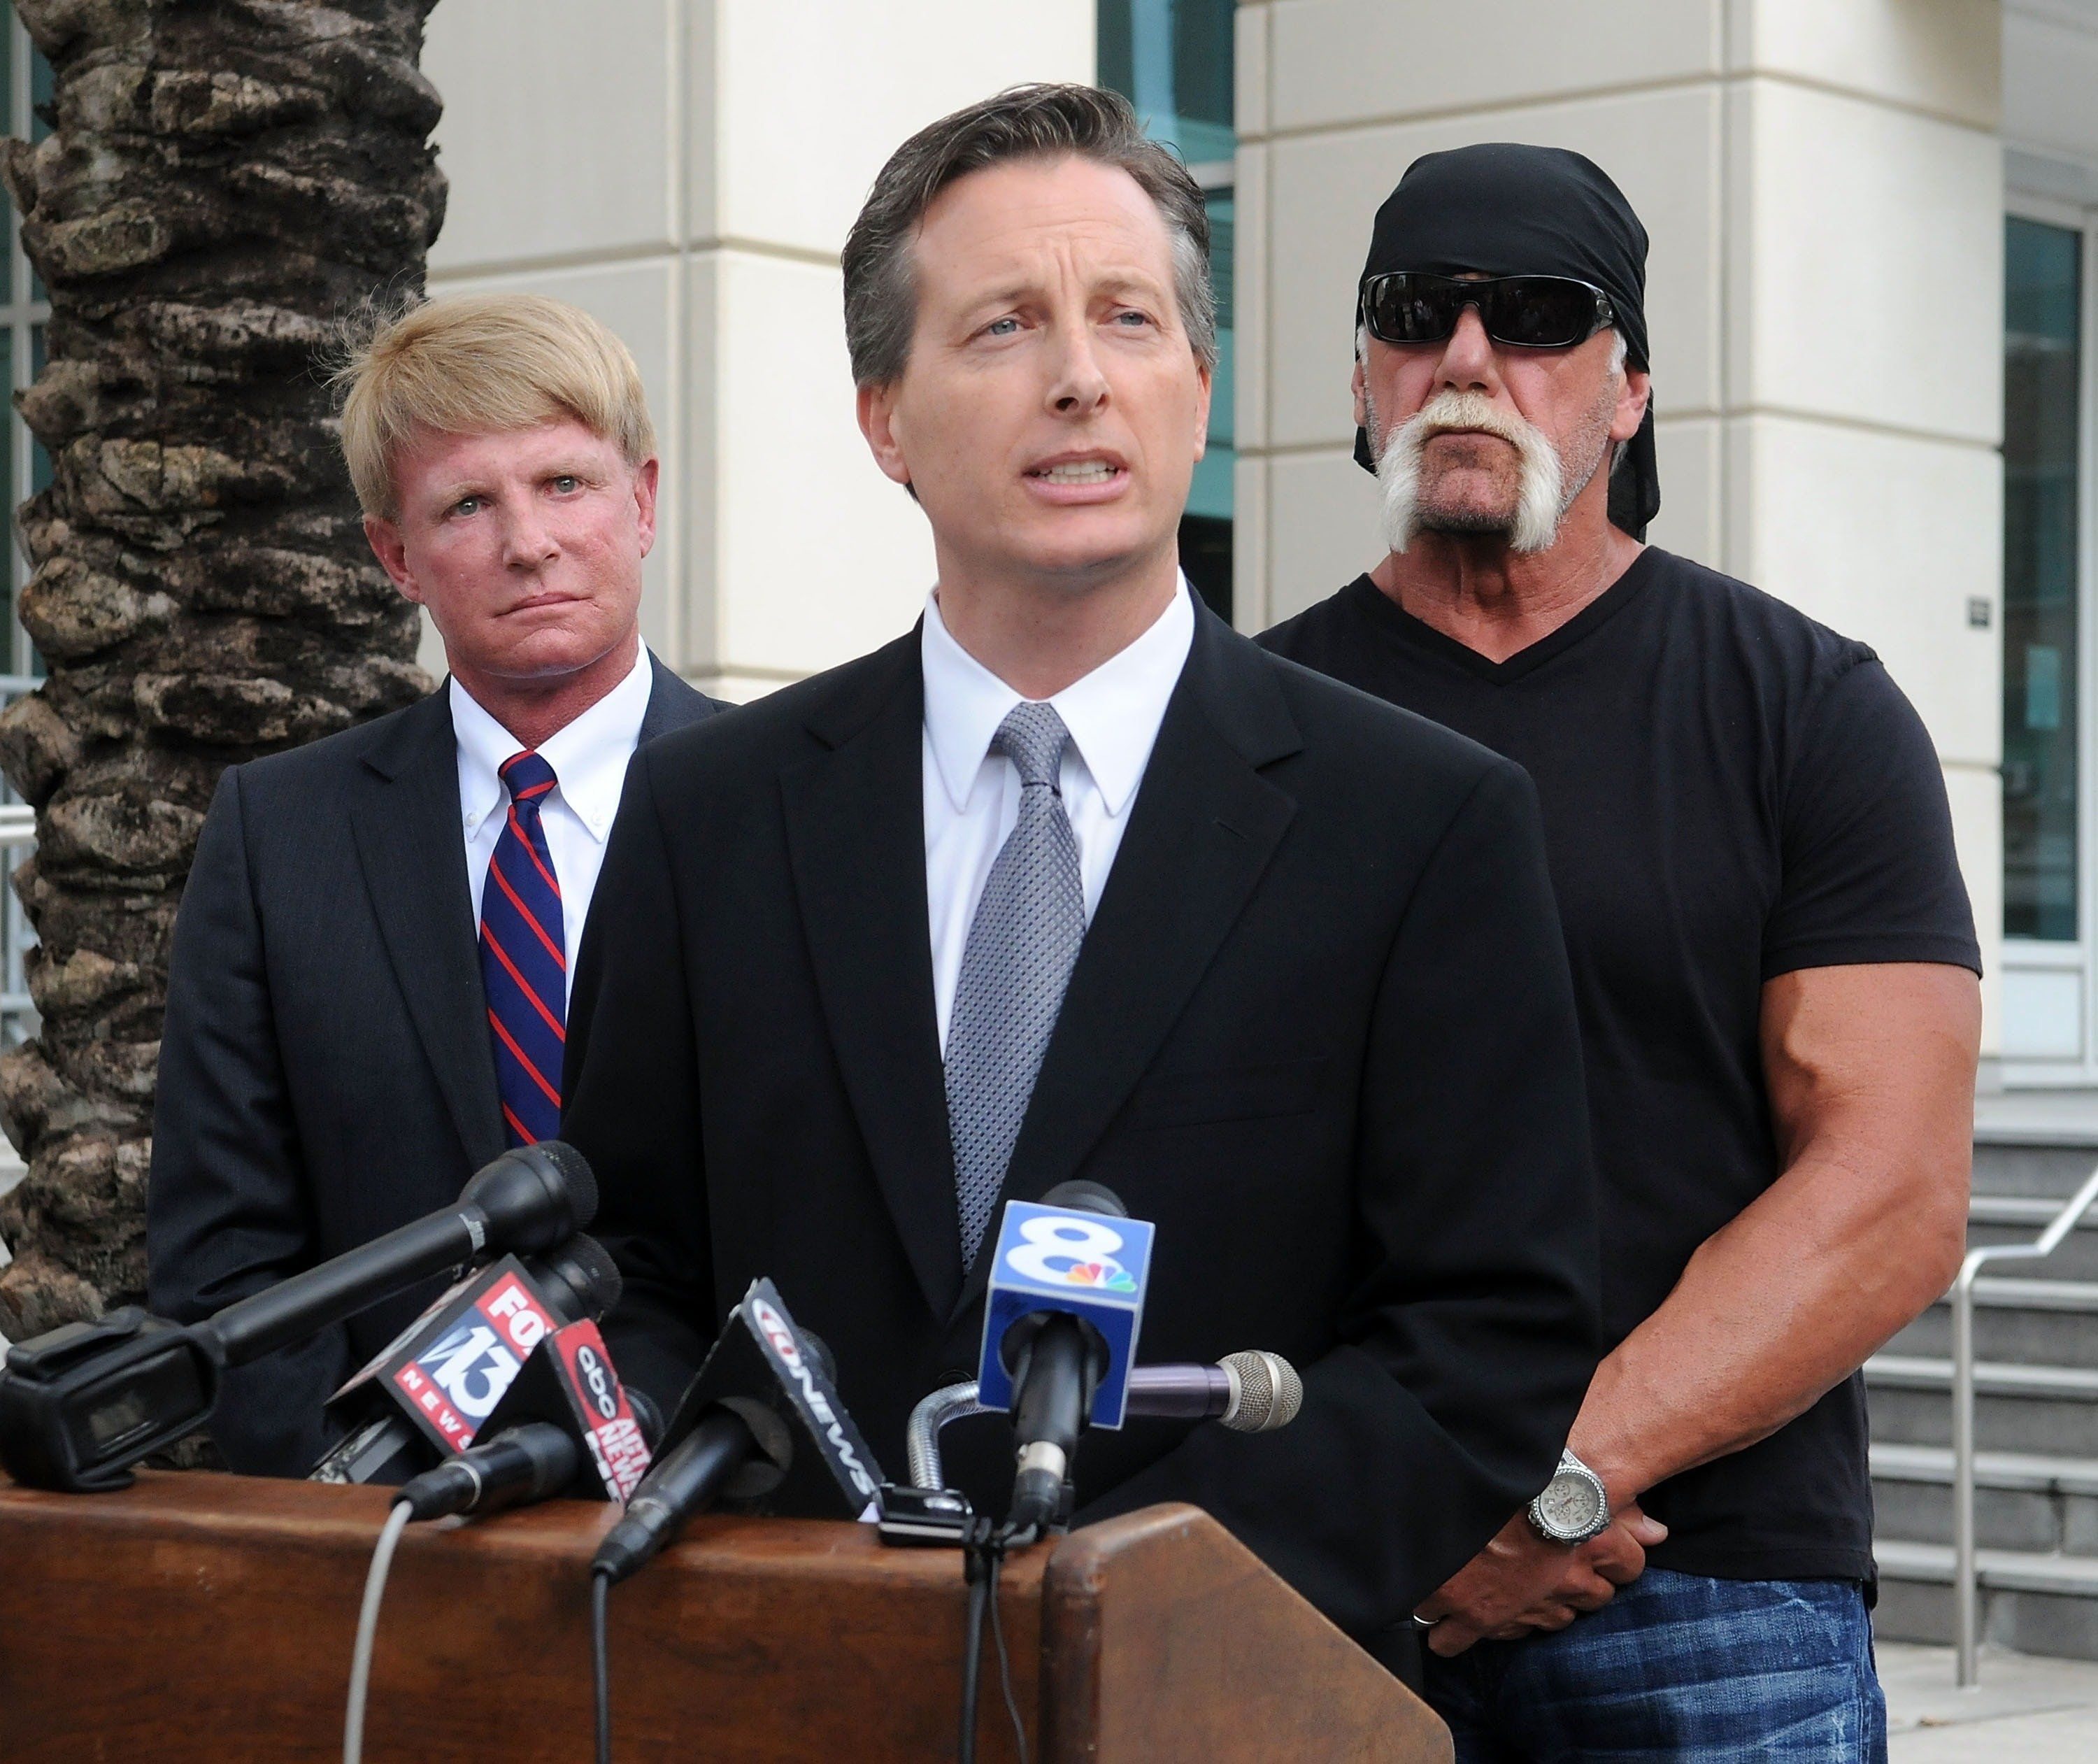 TAMPA, FL - OCTOBER 15:  TV personality Terry Bollea aka Hulk Hogan (R) and his attorneys David Houston (L) and Charles Harder (C) attend for a press conference to discuss legal action being brought on his behalf October 15, 2012 in Tampa, Florida.  Counsel will discuss the two civil lawsuits suits being filed today.  The first is a state court action against Heather Clem and Bubba the Love Sponge Clem. The second is a federal court action against Gawker Media.  (Photo by Gerardo Mora/Getty Images)